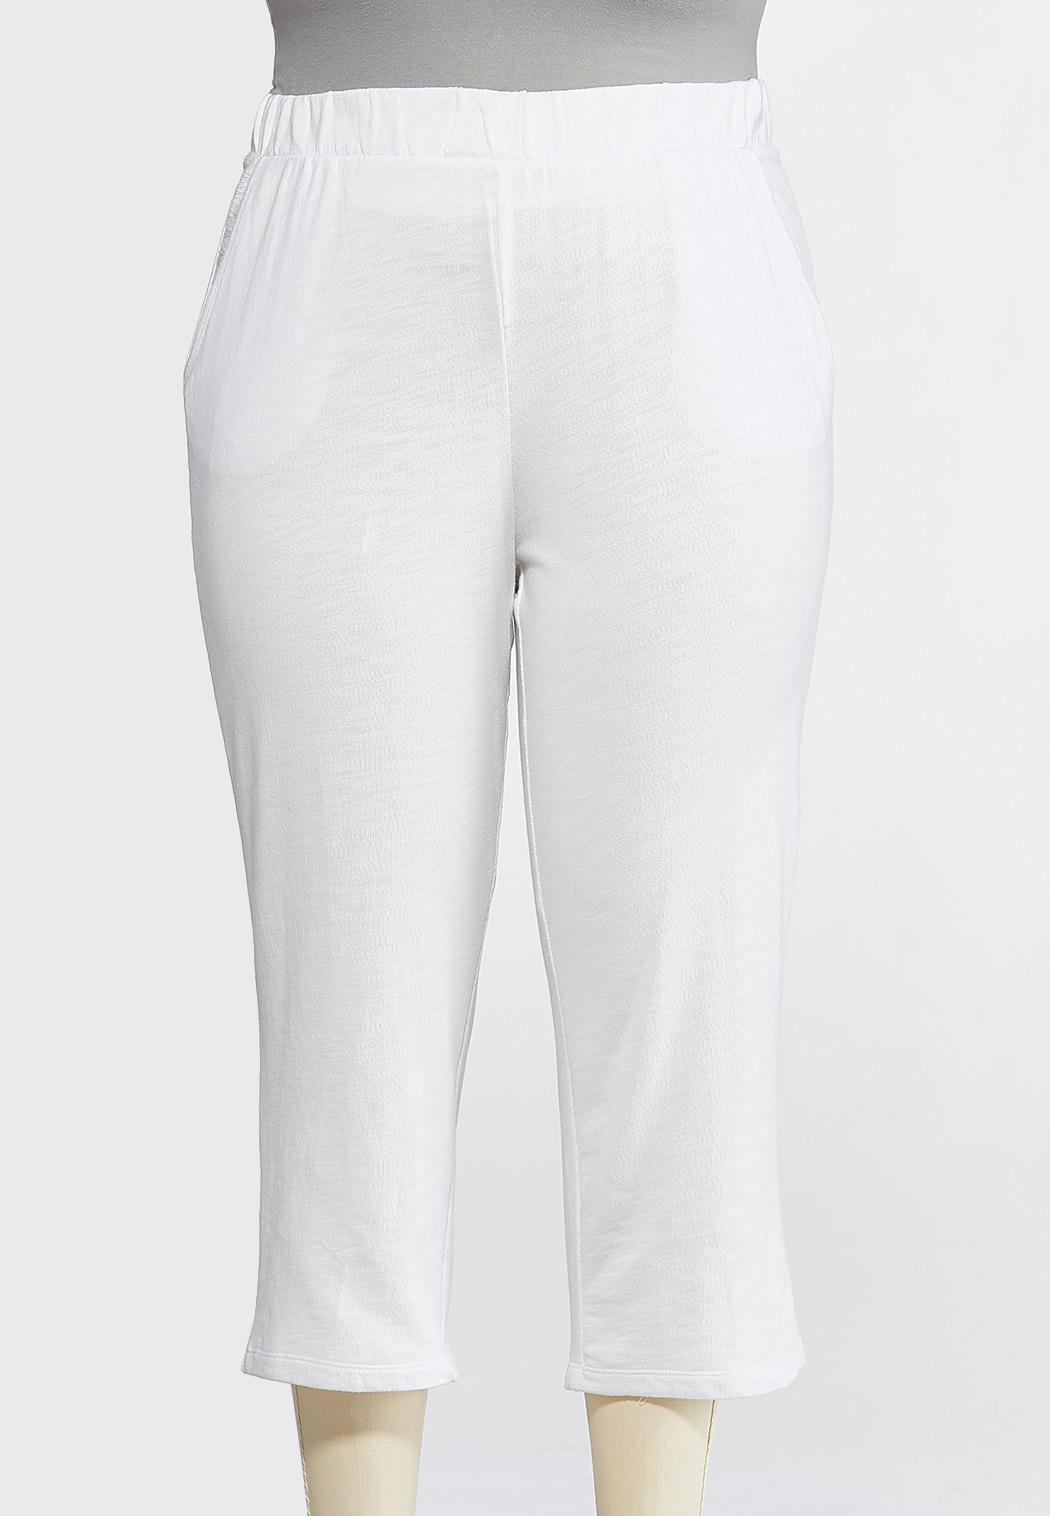 Plus Size Cropped White French Terry Pants